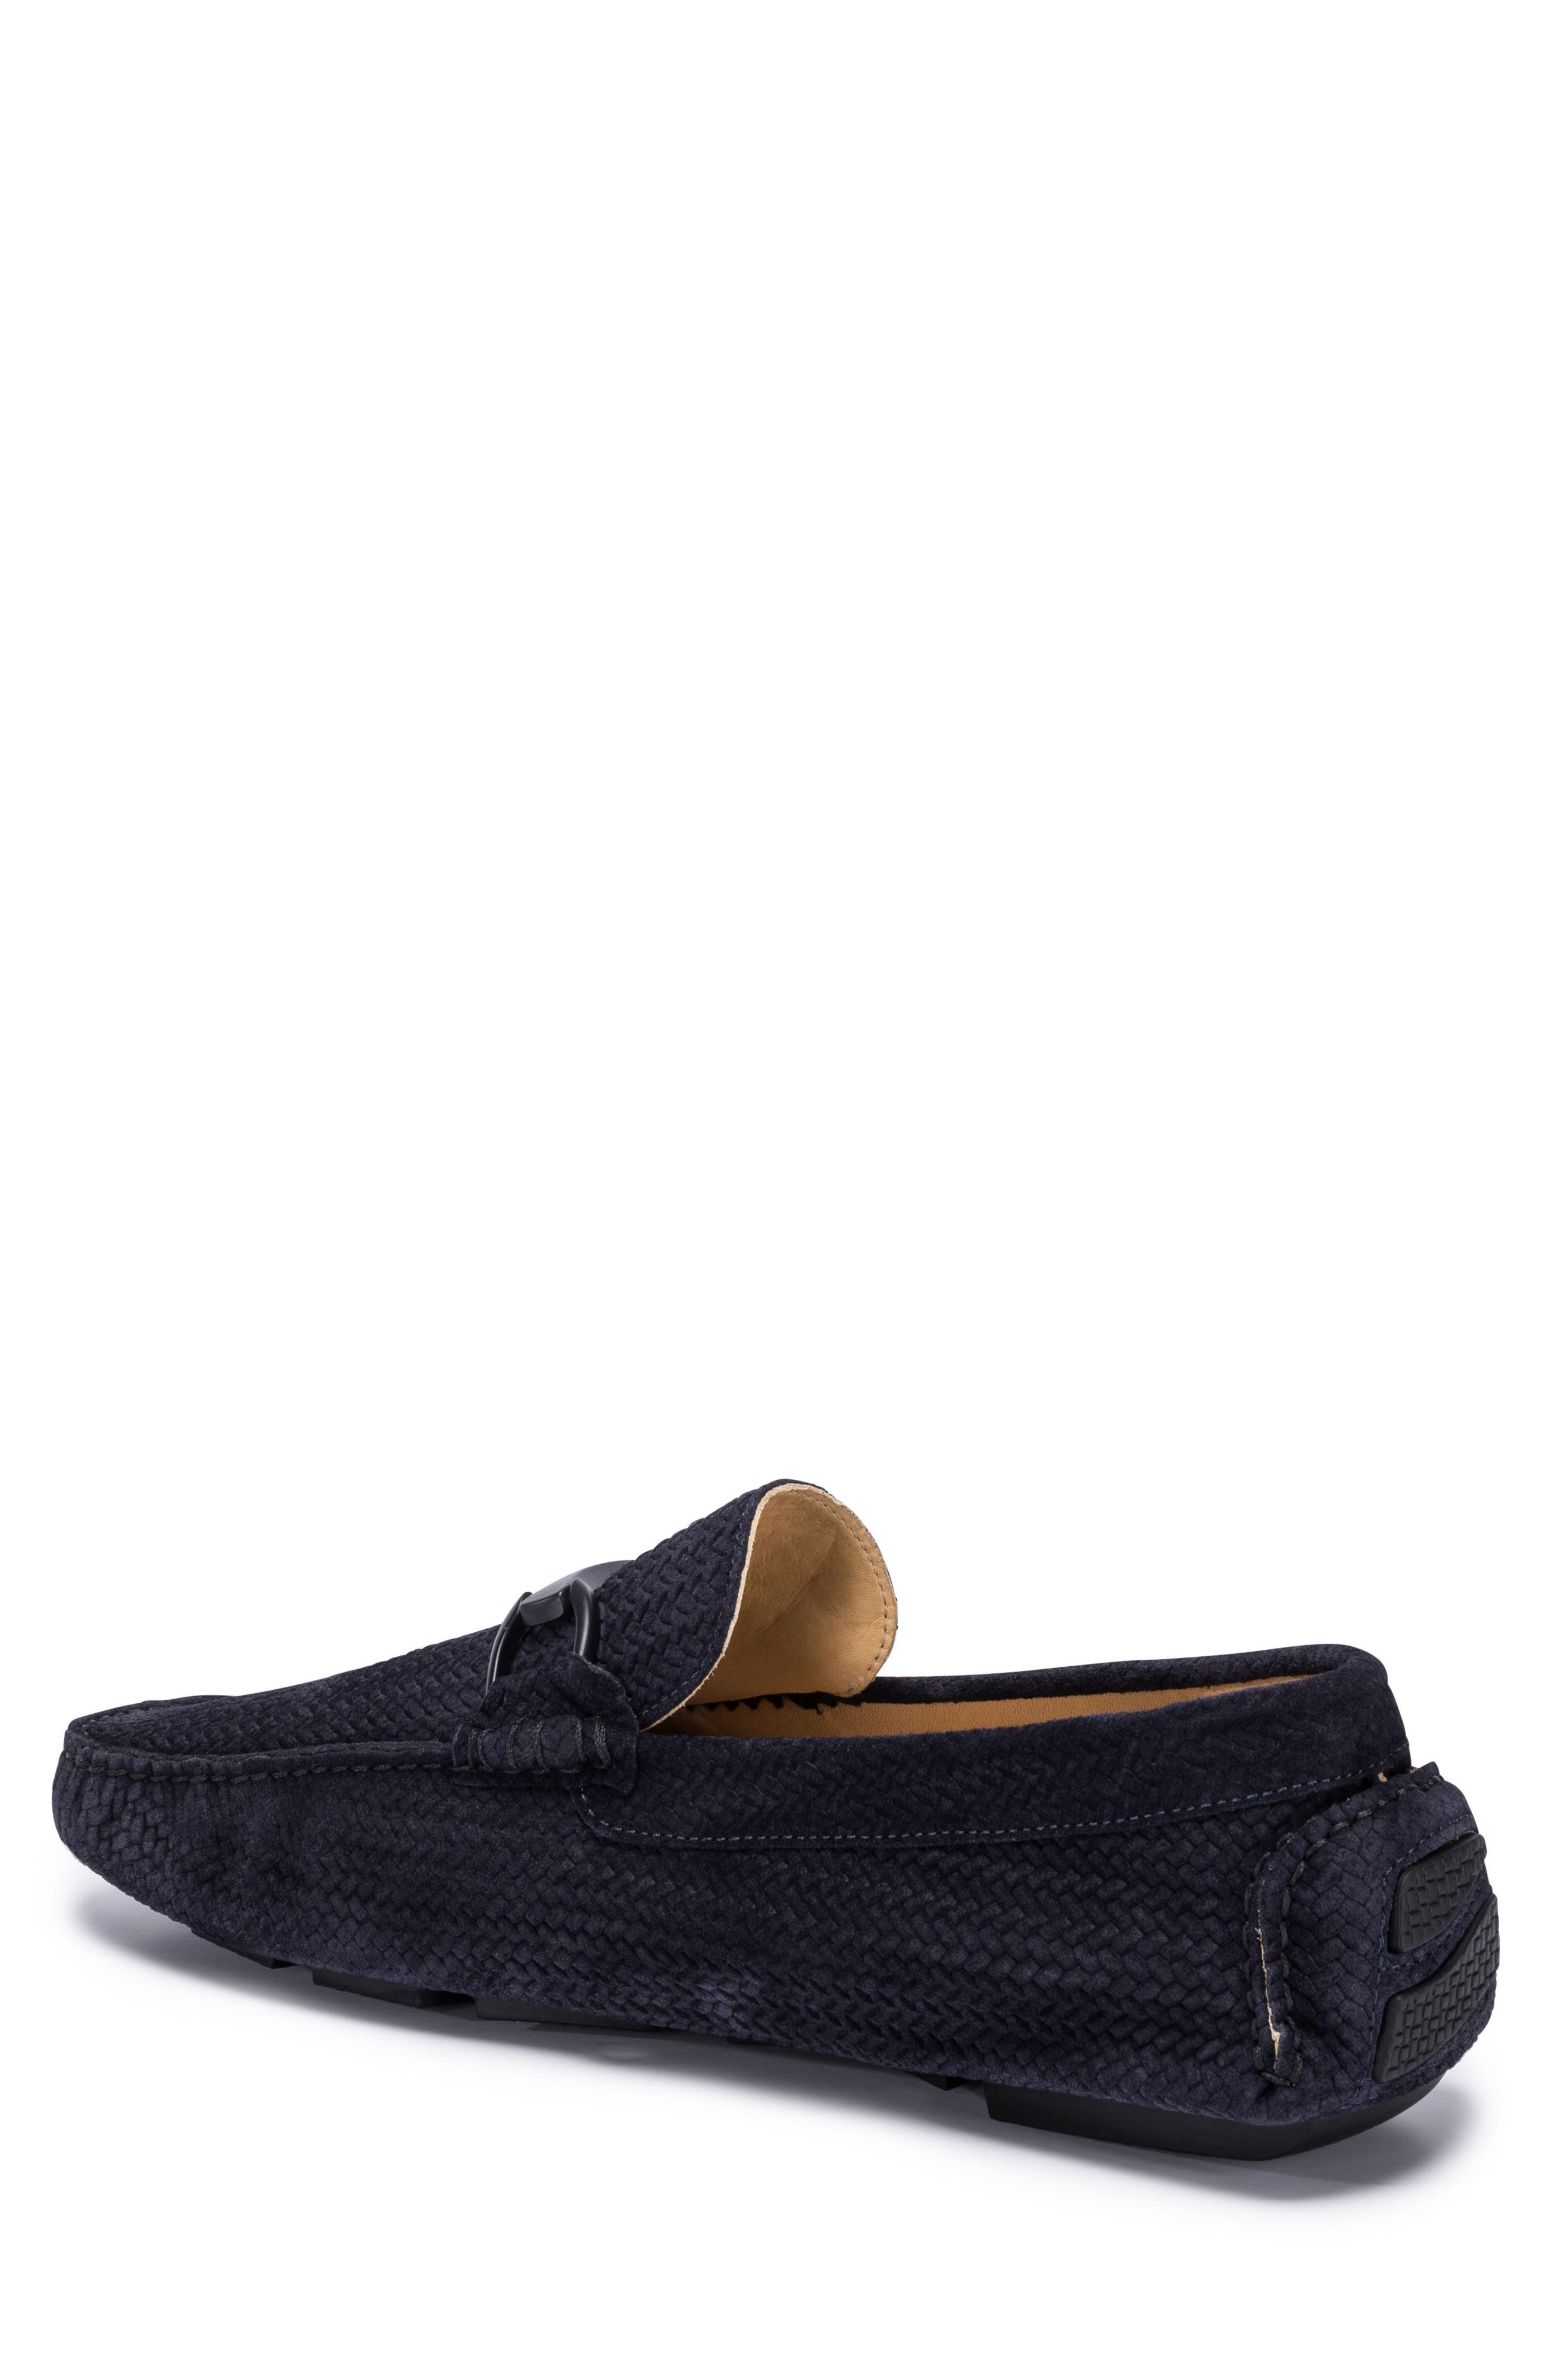 Amalfi Woven Bit Driving Loafer,                             Alternate thumbnail 2, color,                             429